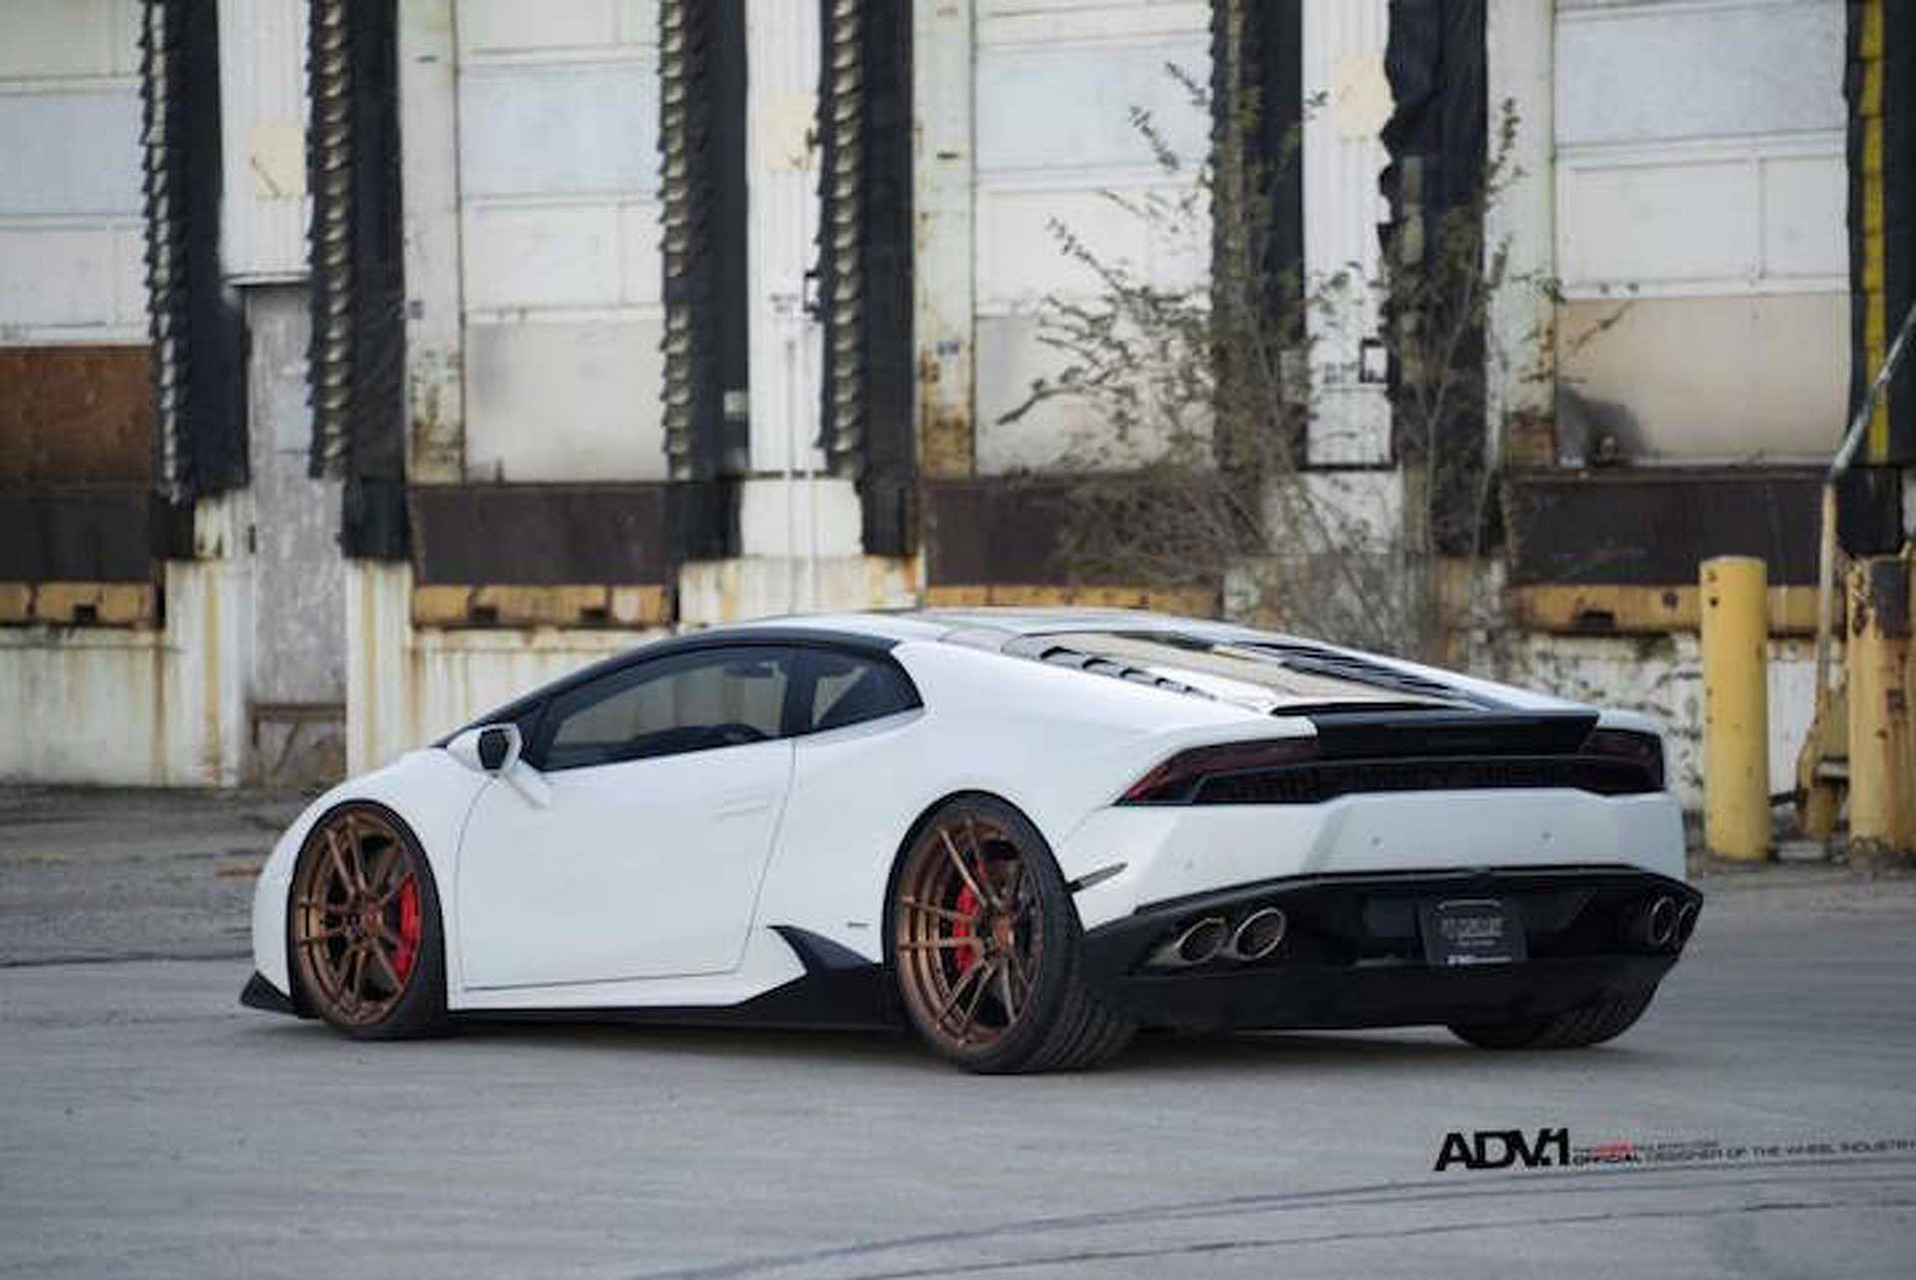 Lamborghini Huracan Looks Mean as Heck Wearing Matte Brown ADV.1 Wheels